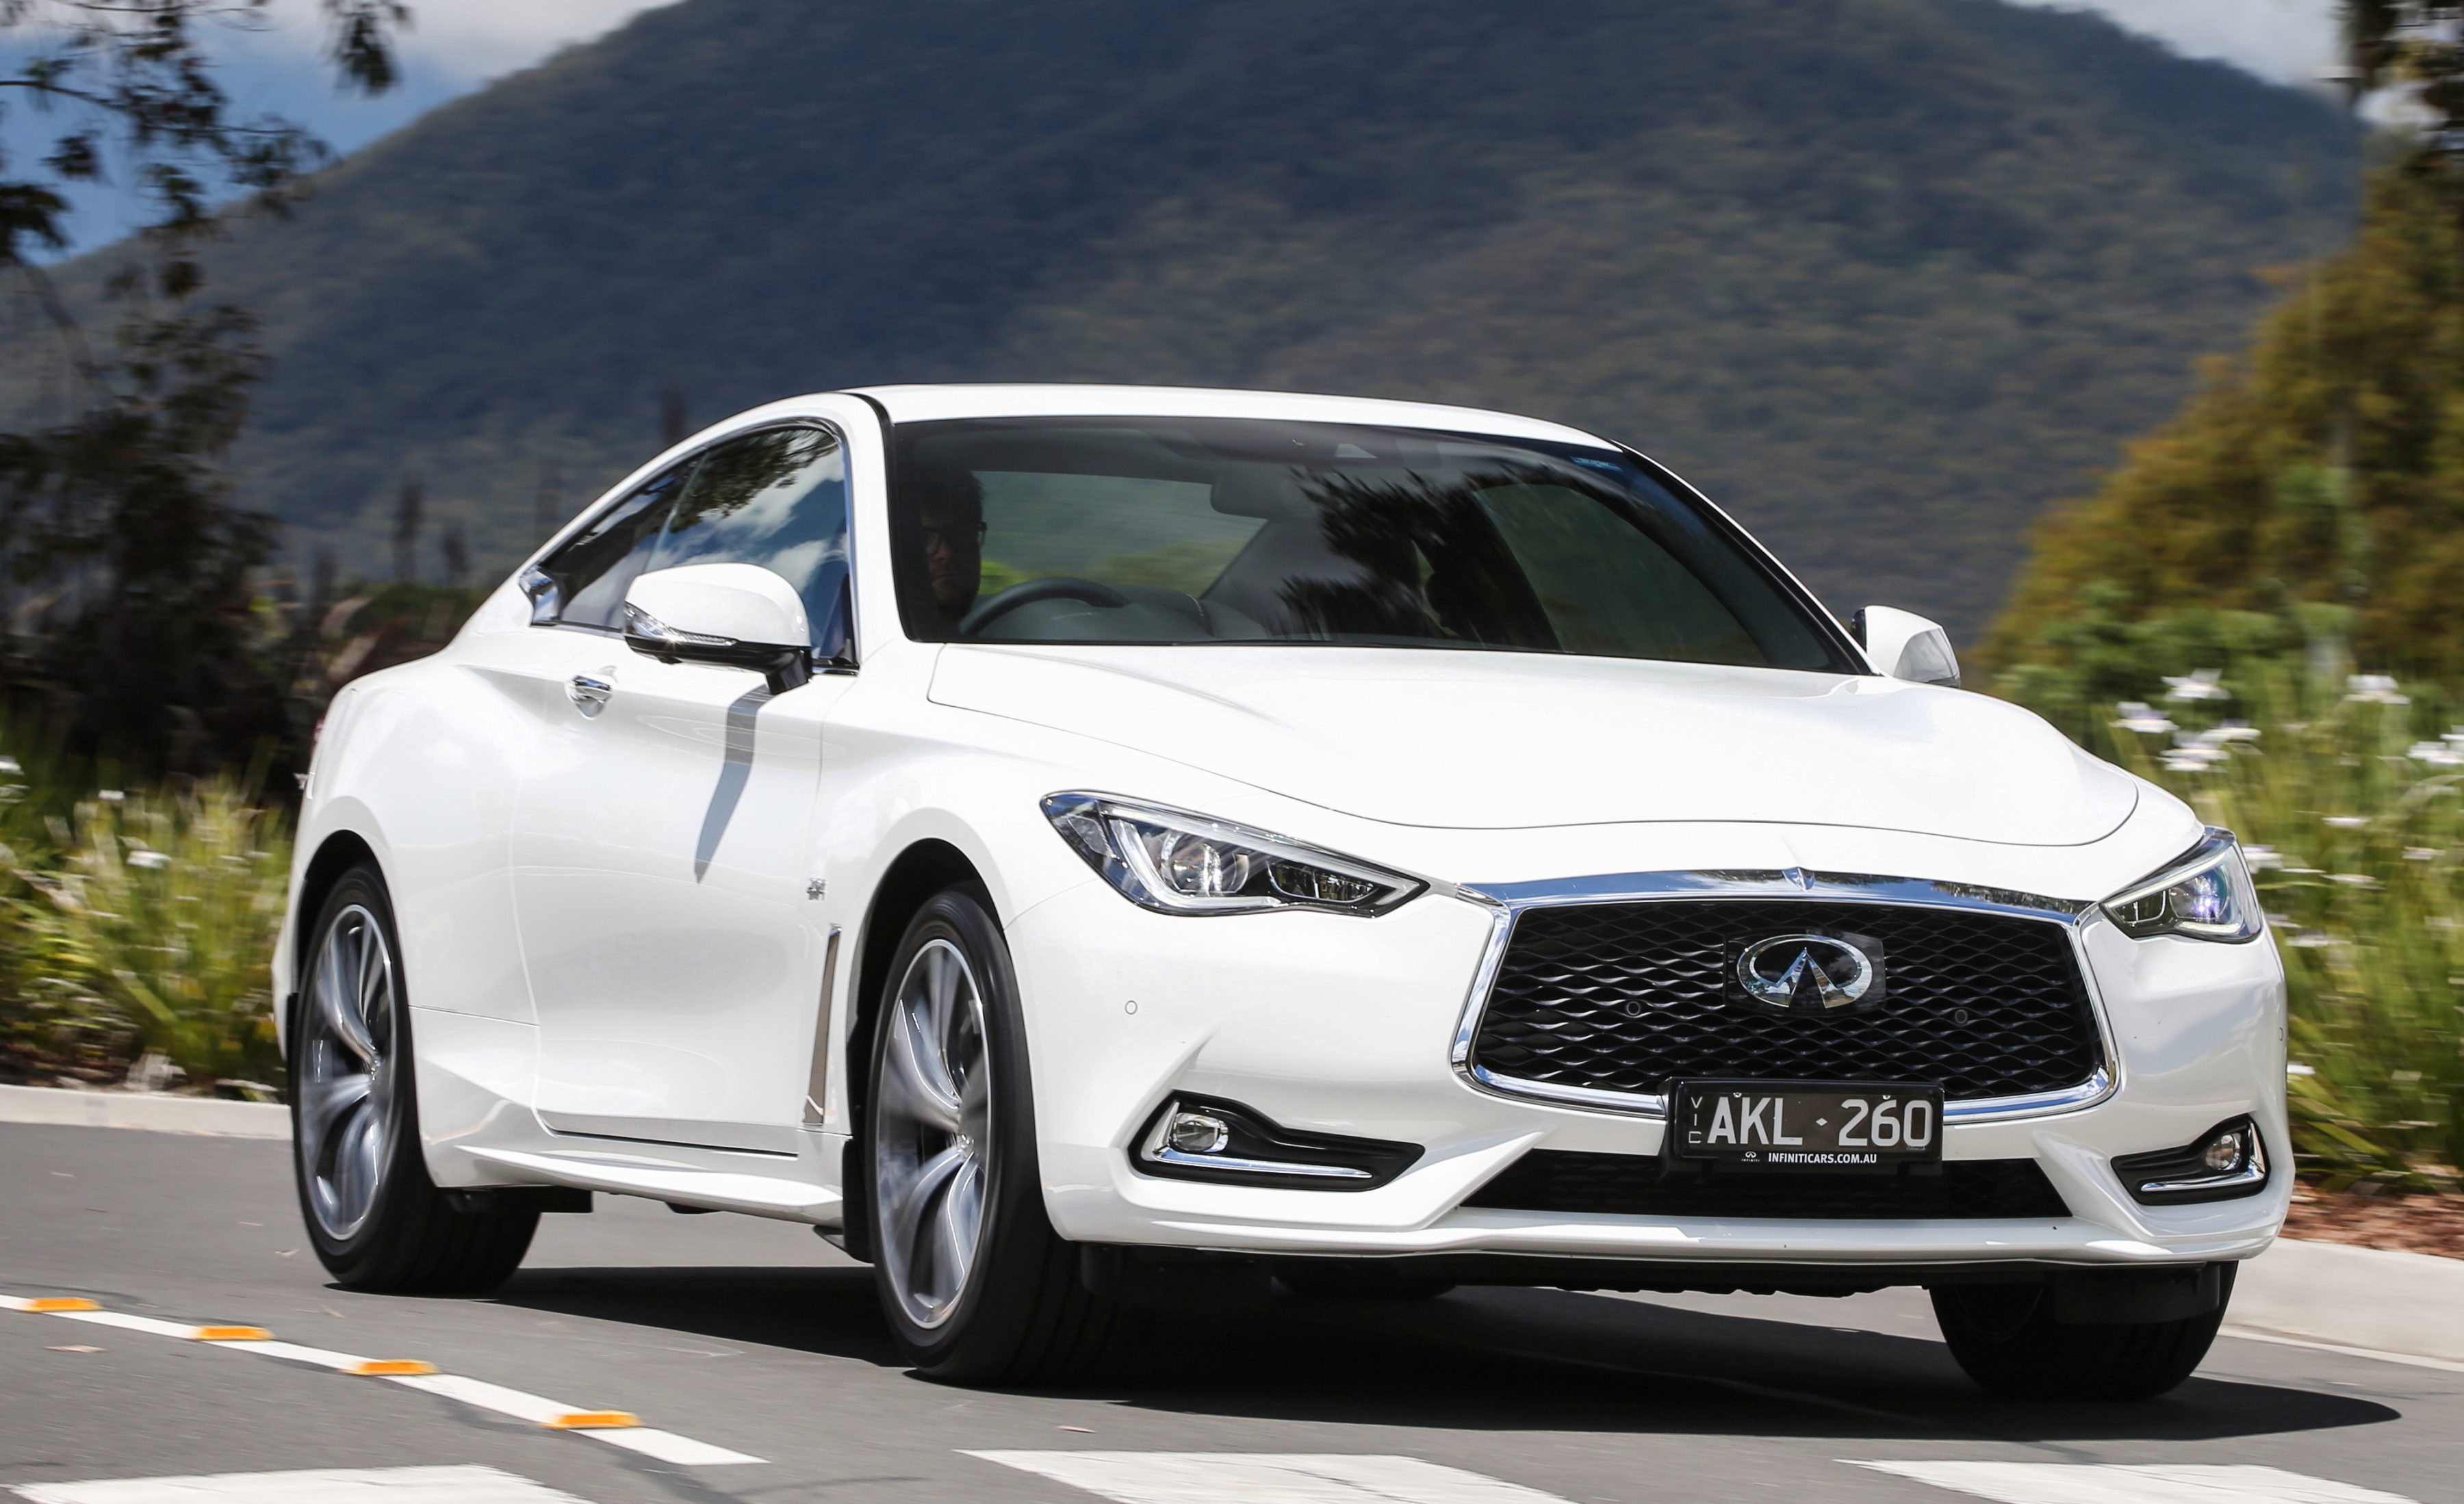 Infiniti Q60: beauty meets brains